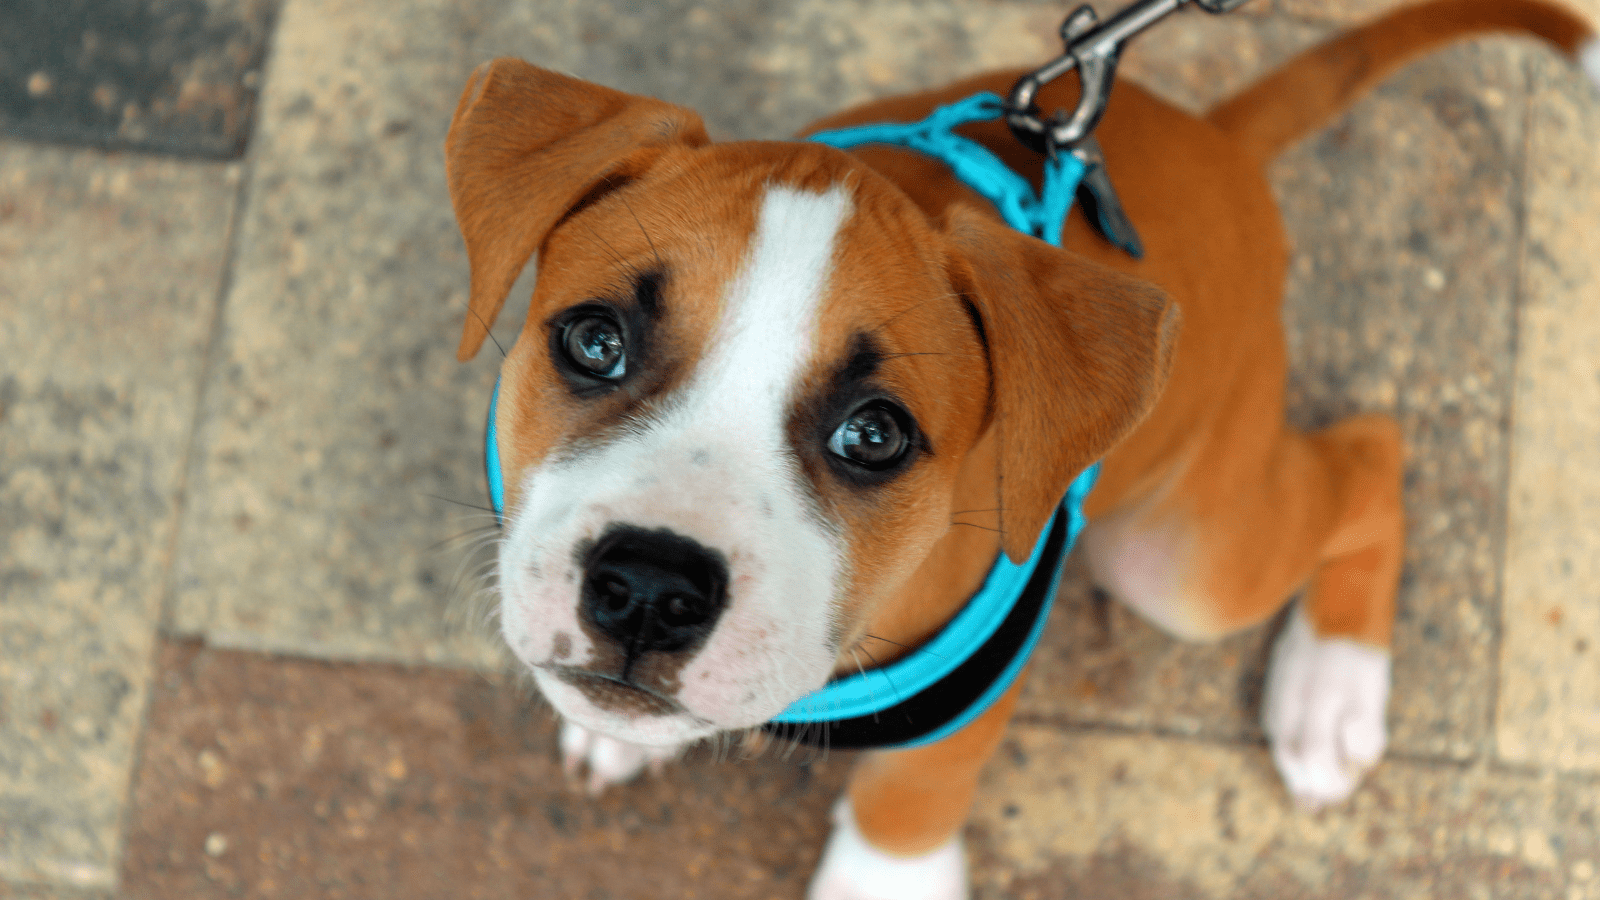 How to train a dog to wear a harness